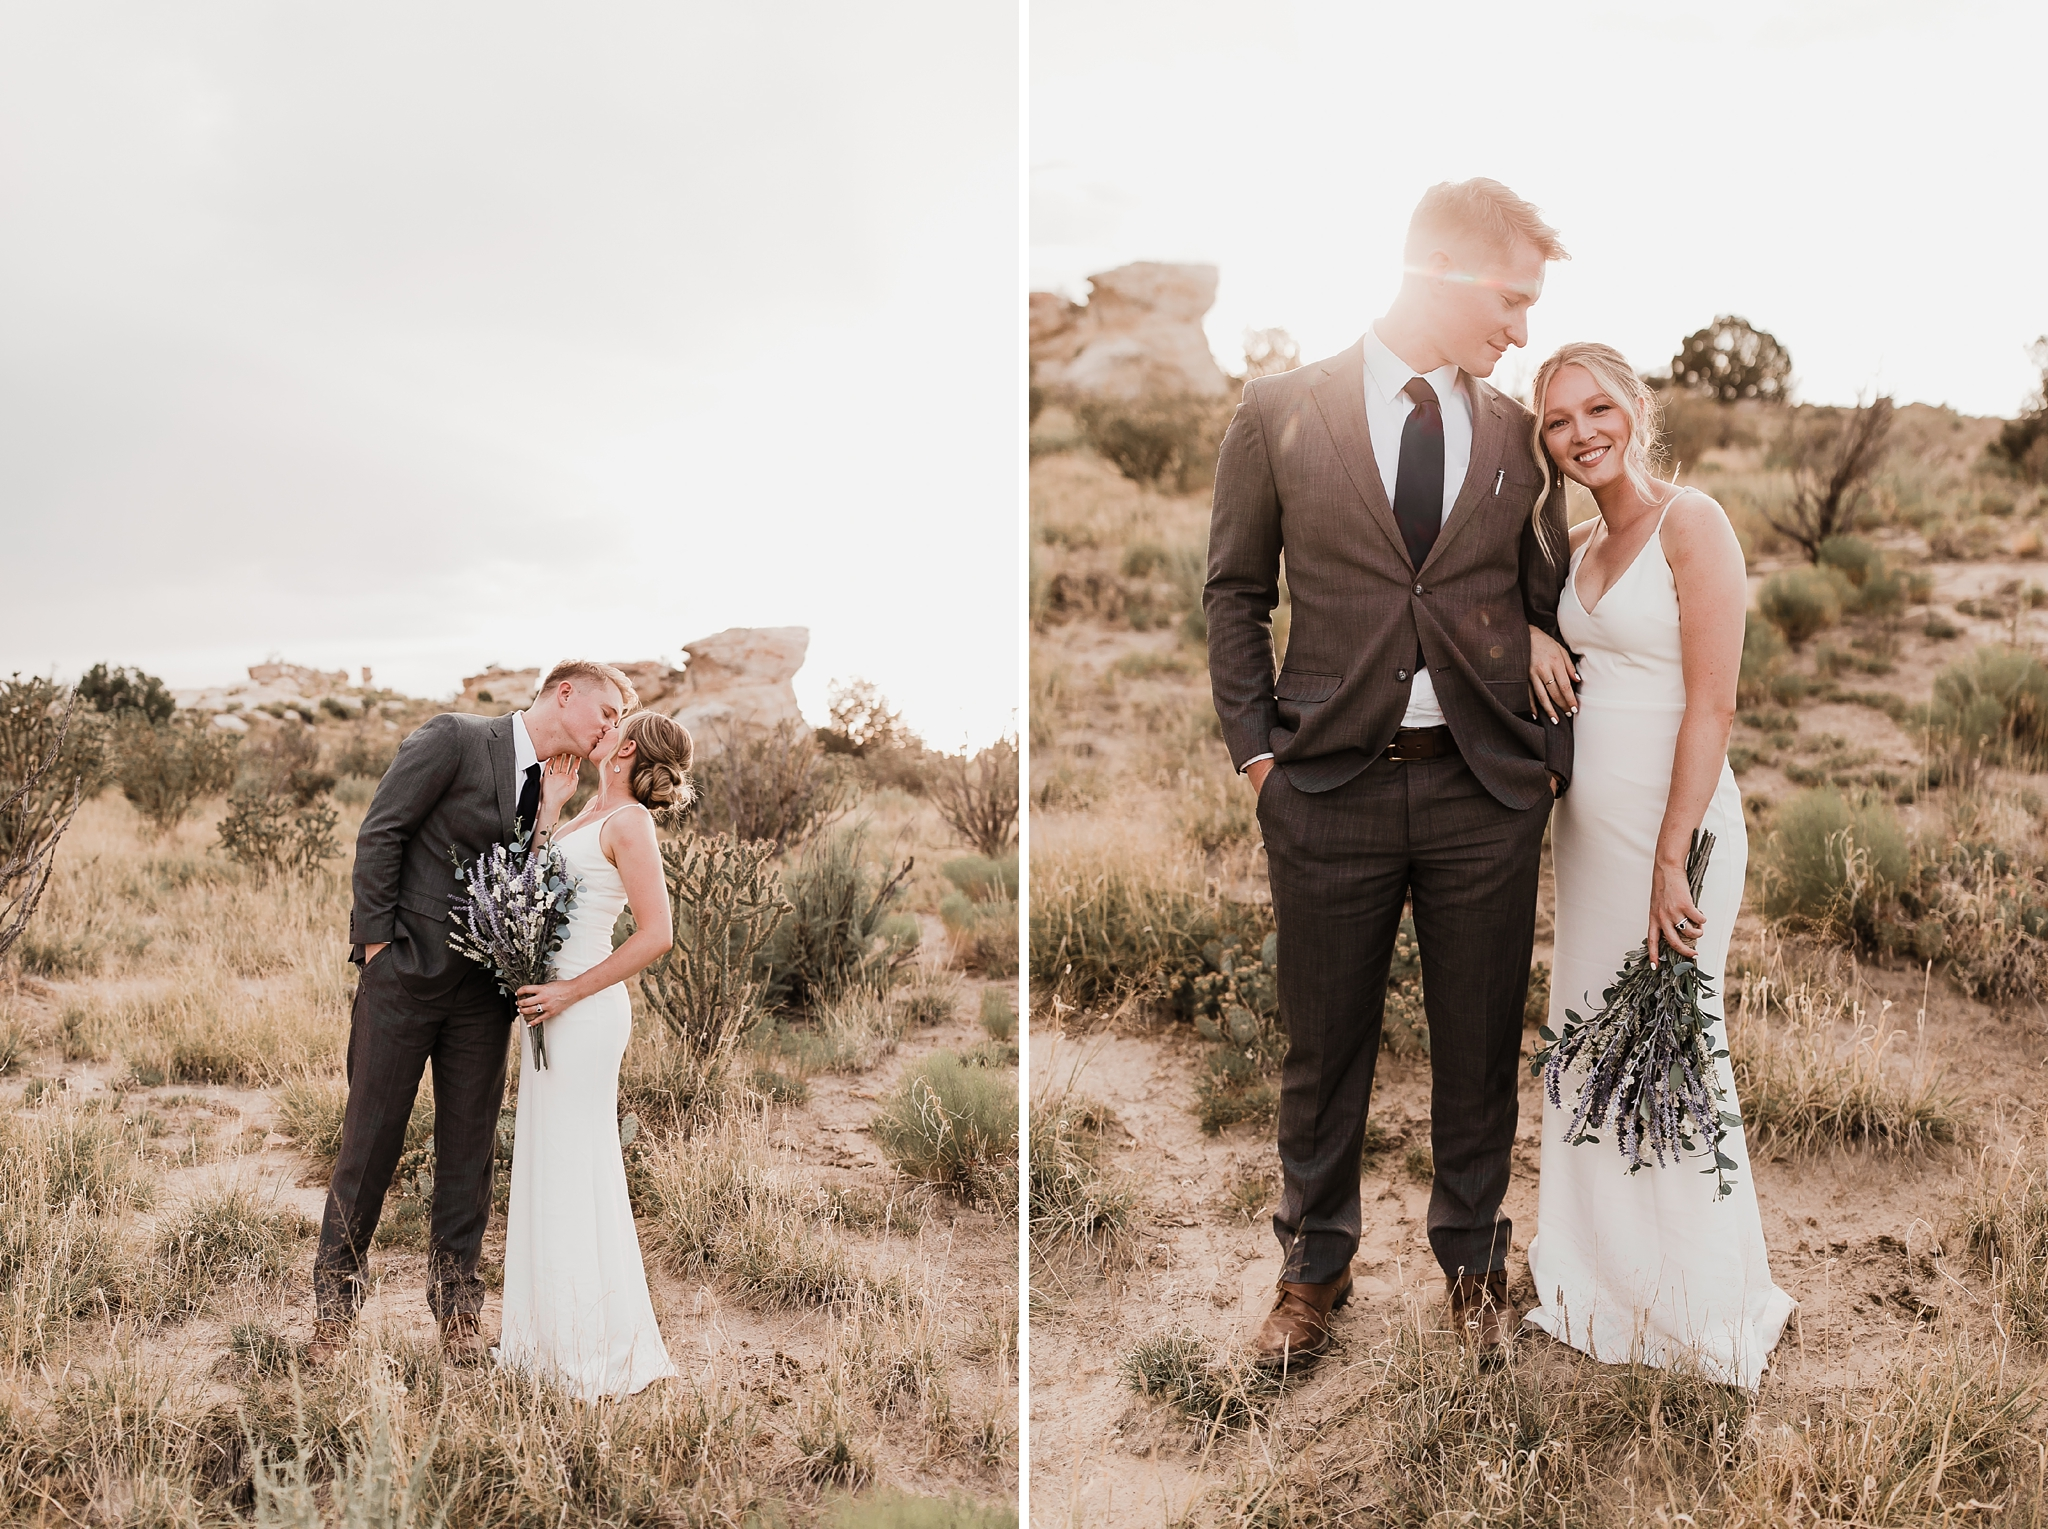 Alicia+lucia+photography+-+albuquerque+wedding+photographer+-+santa+fe+wedding+photography+-+new+mexico+wedding+photographer+-+new+mexico+wedding+-+new+mexico+elopement+-+elopment+-+mountain+elopement_0002.jpg